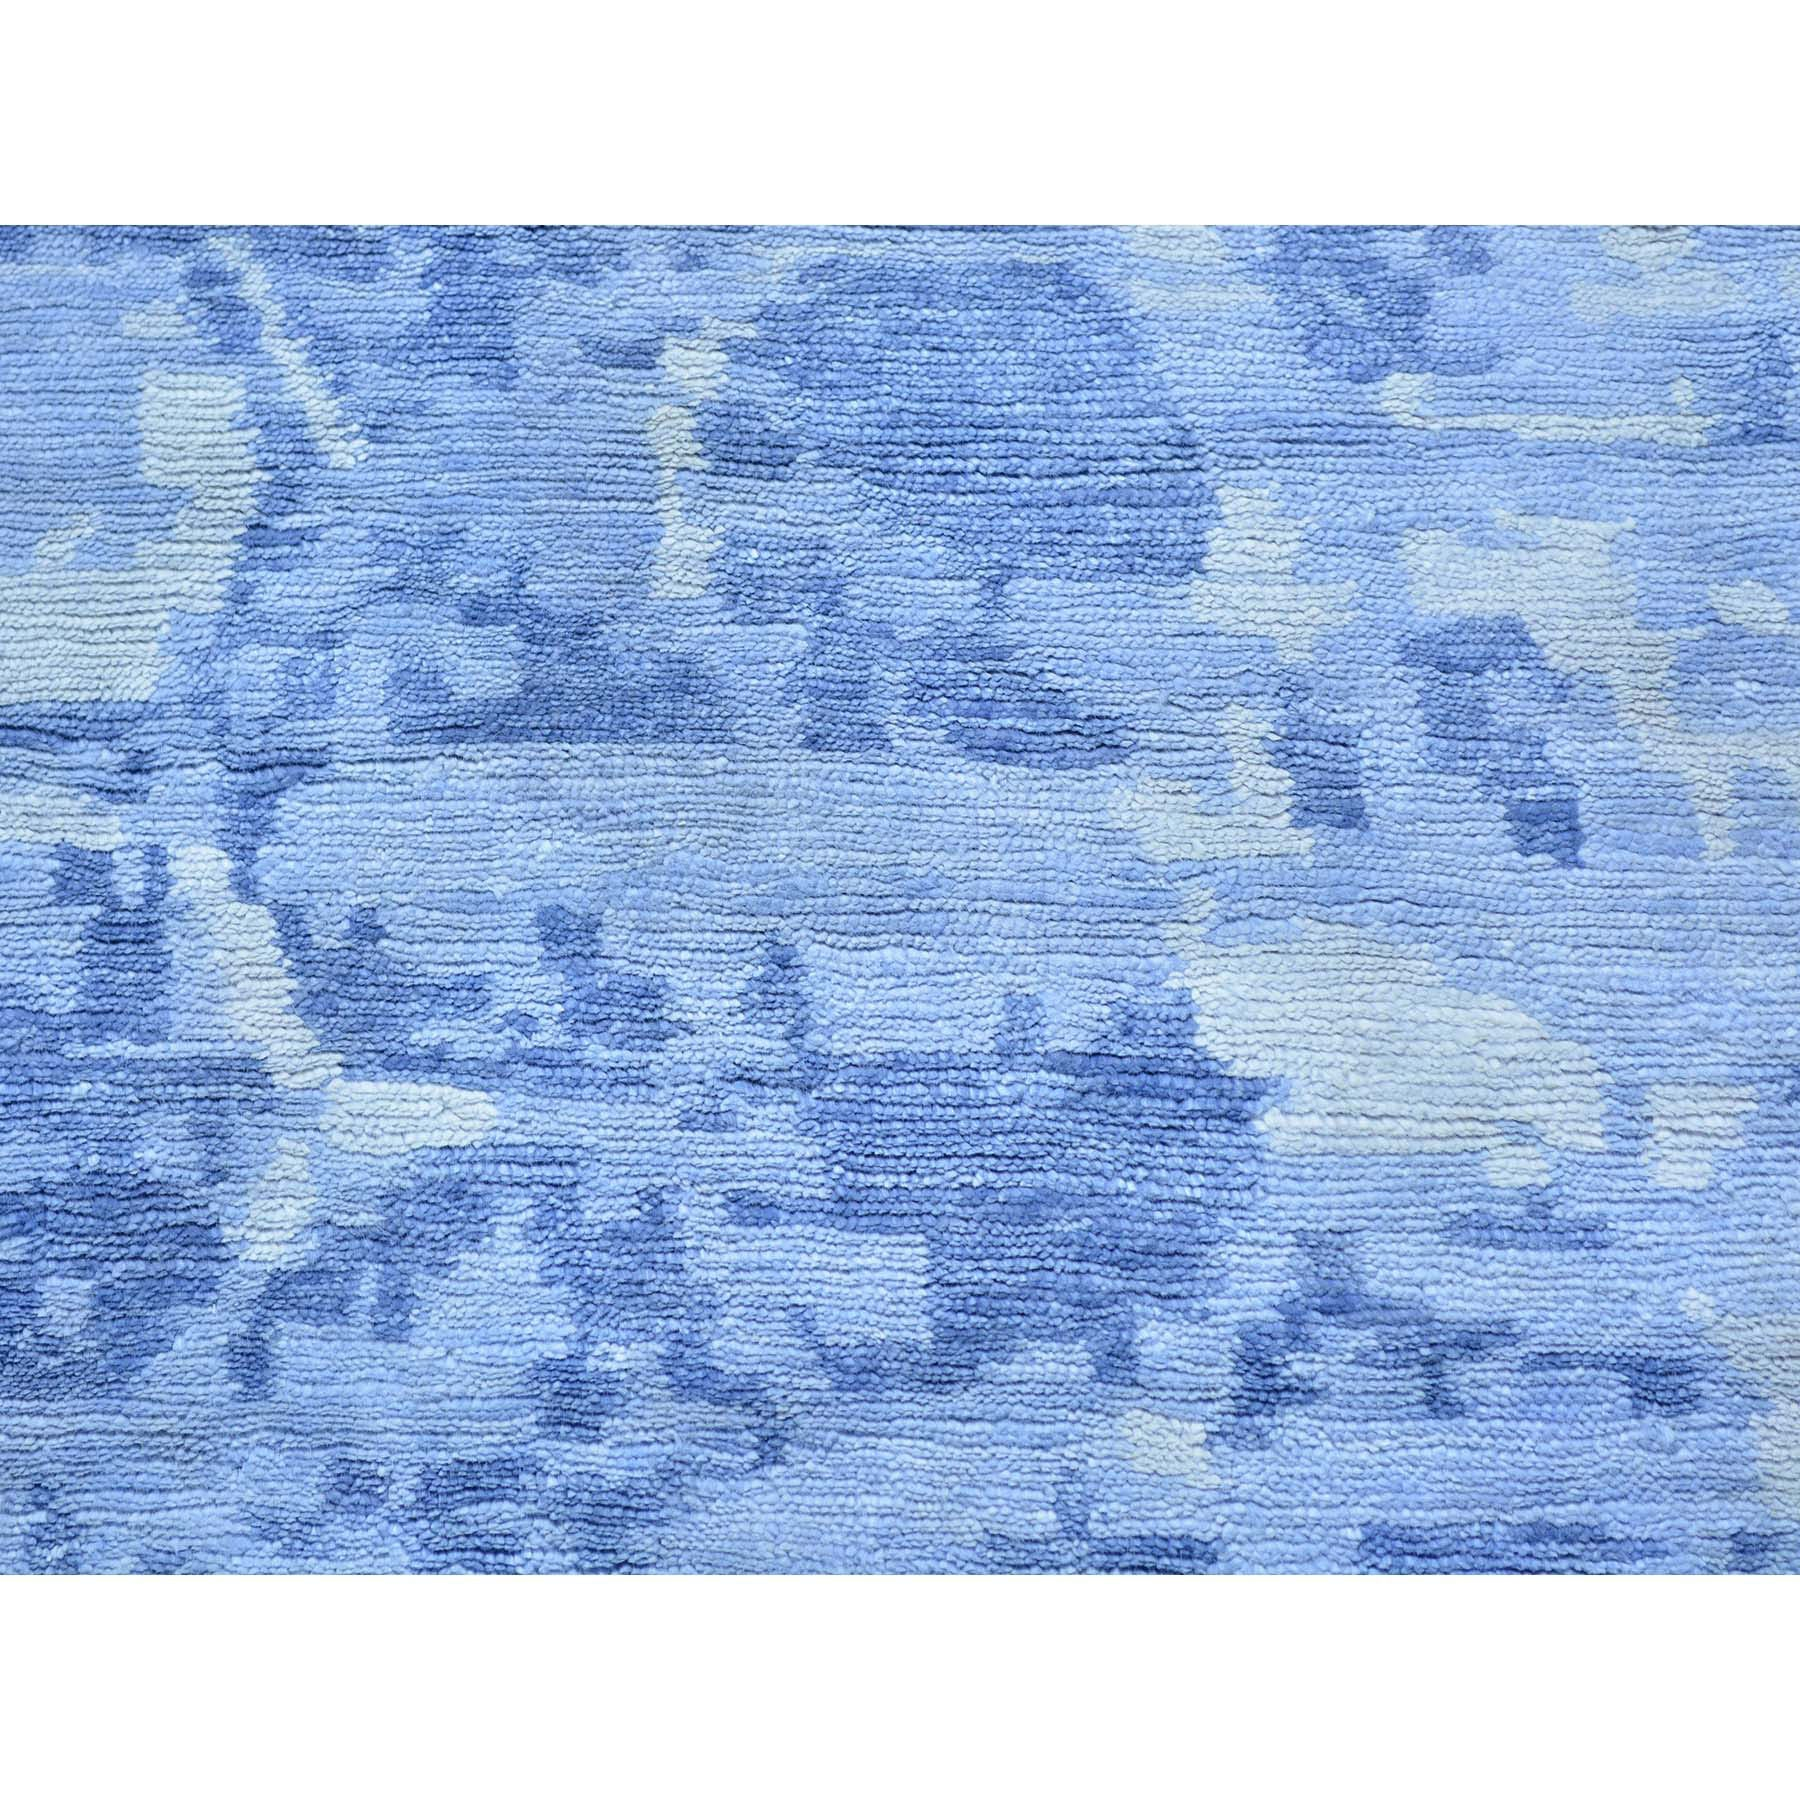 "Handmade Modern and Contemporary Rectangle Rug > Design# SH25338 > Size: 2'-0"" x 3'-0"" [ONLINE ONLY]"